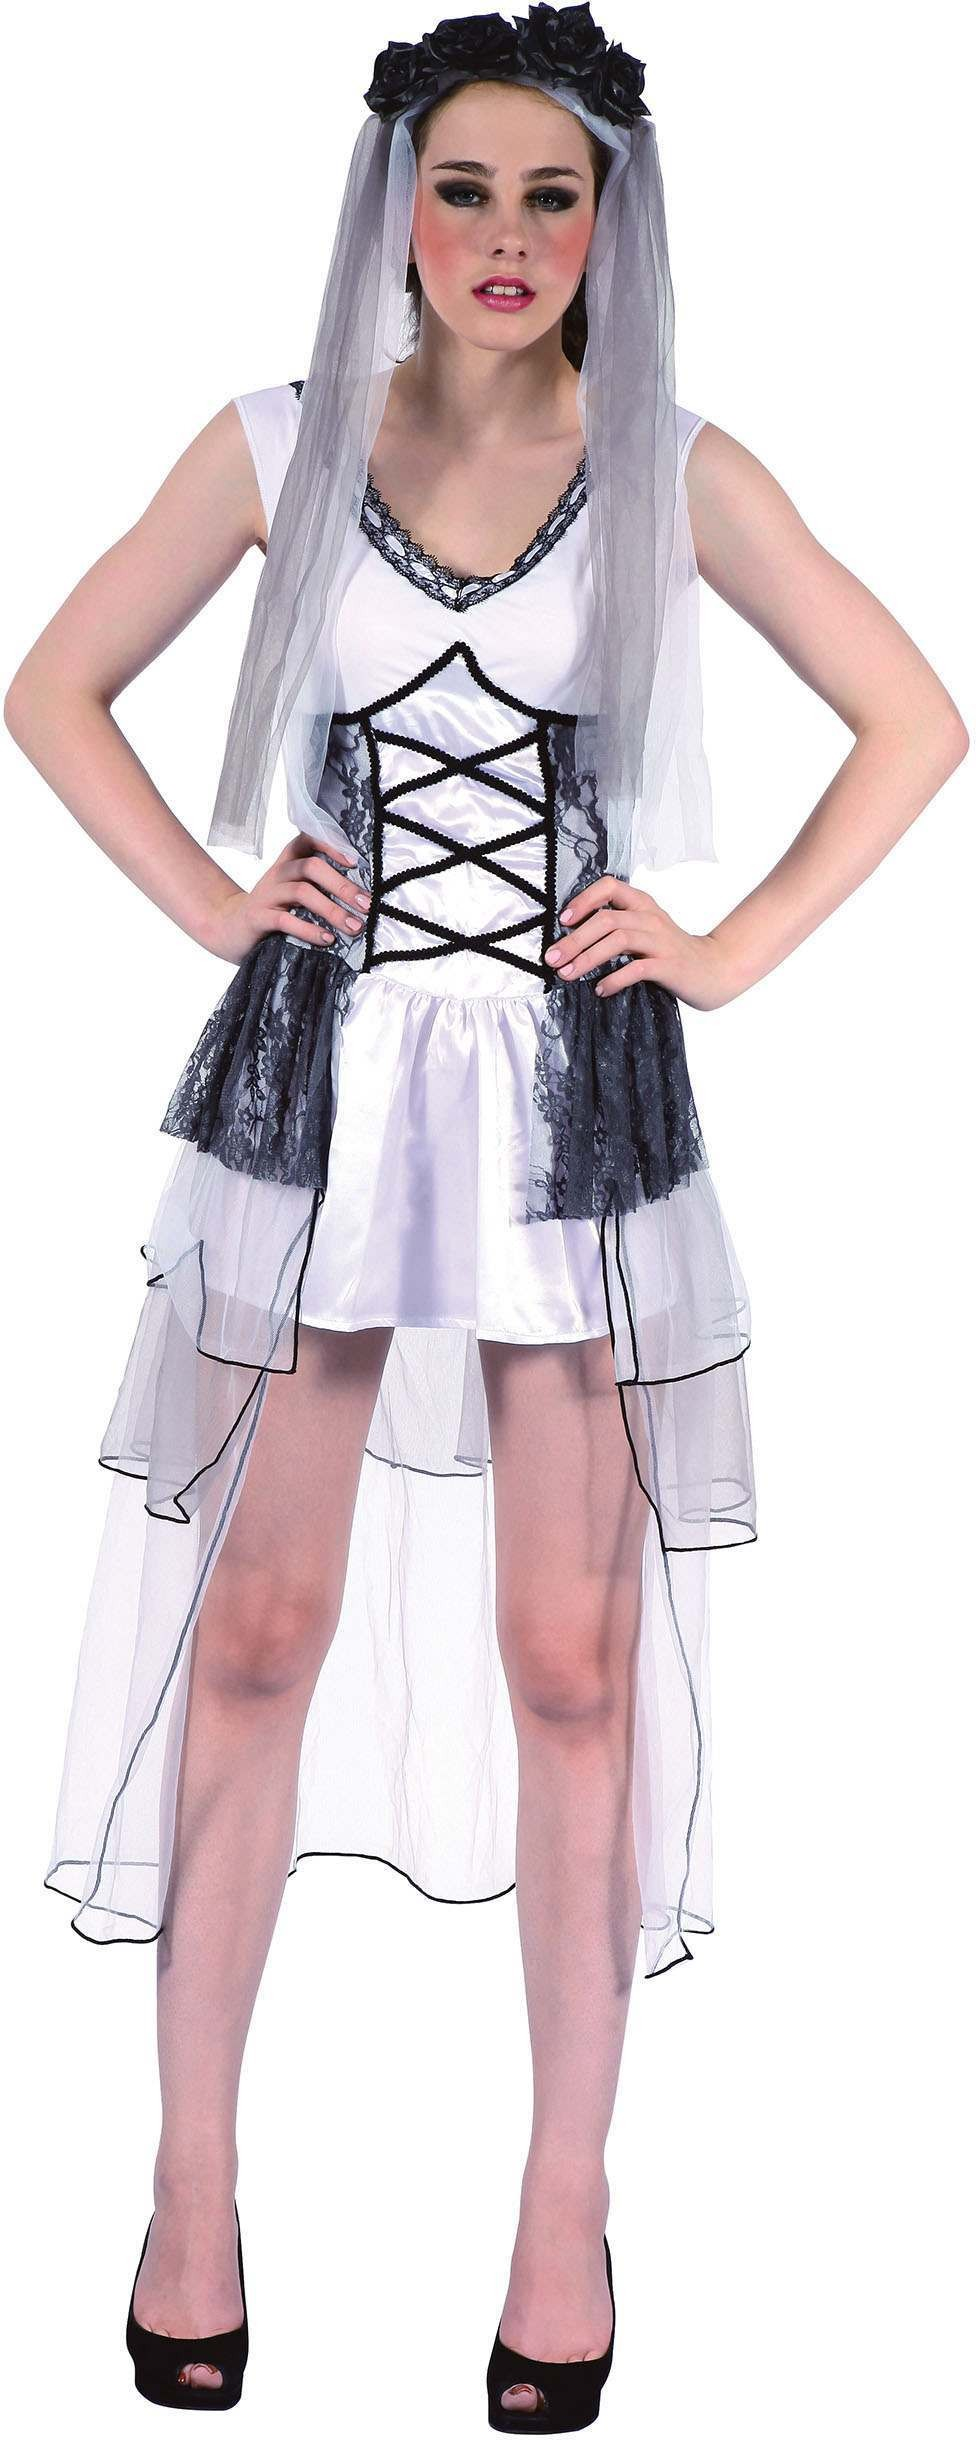 Ladies Black And White (Deathly Bride) Fancy Dress Costume